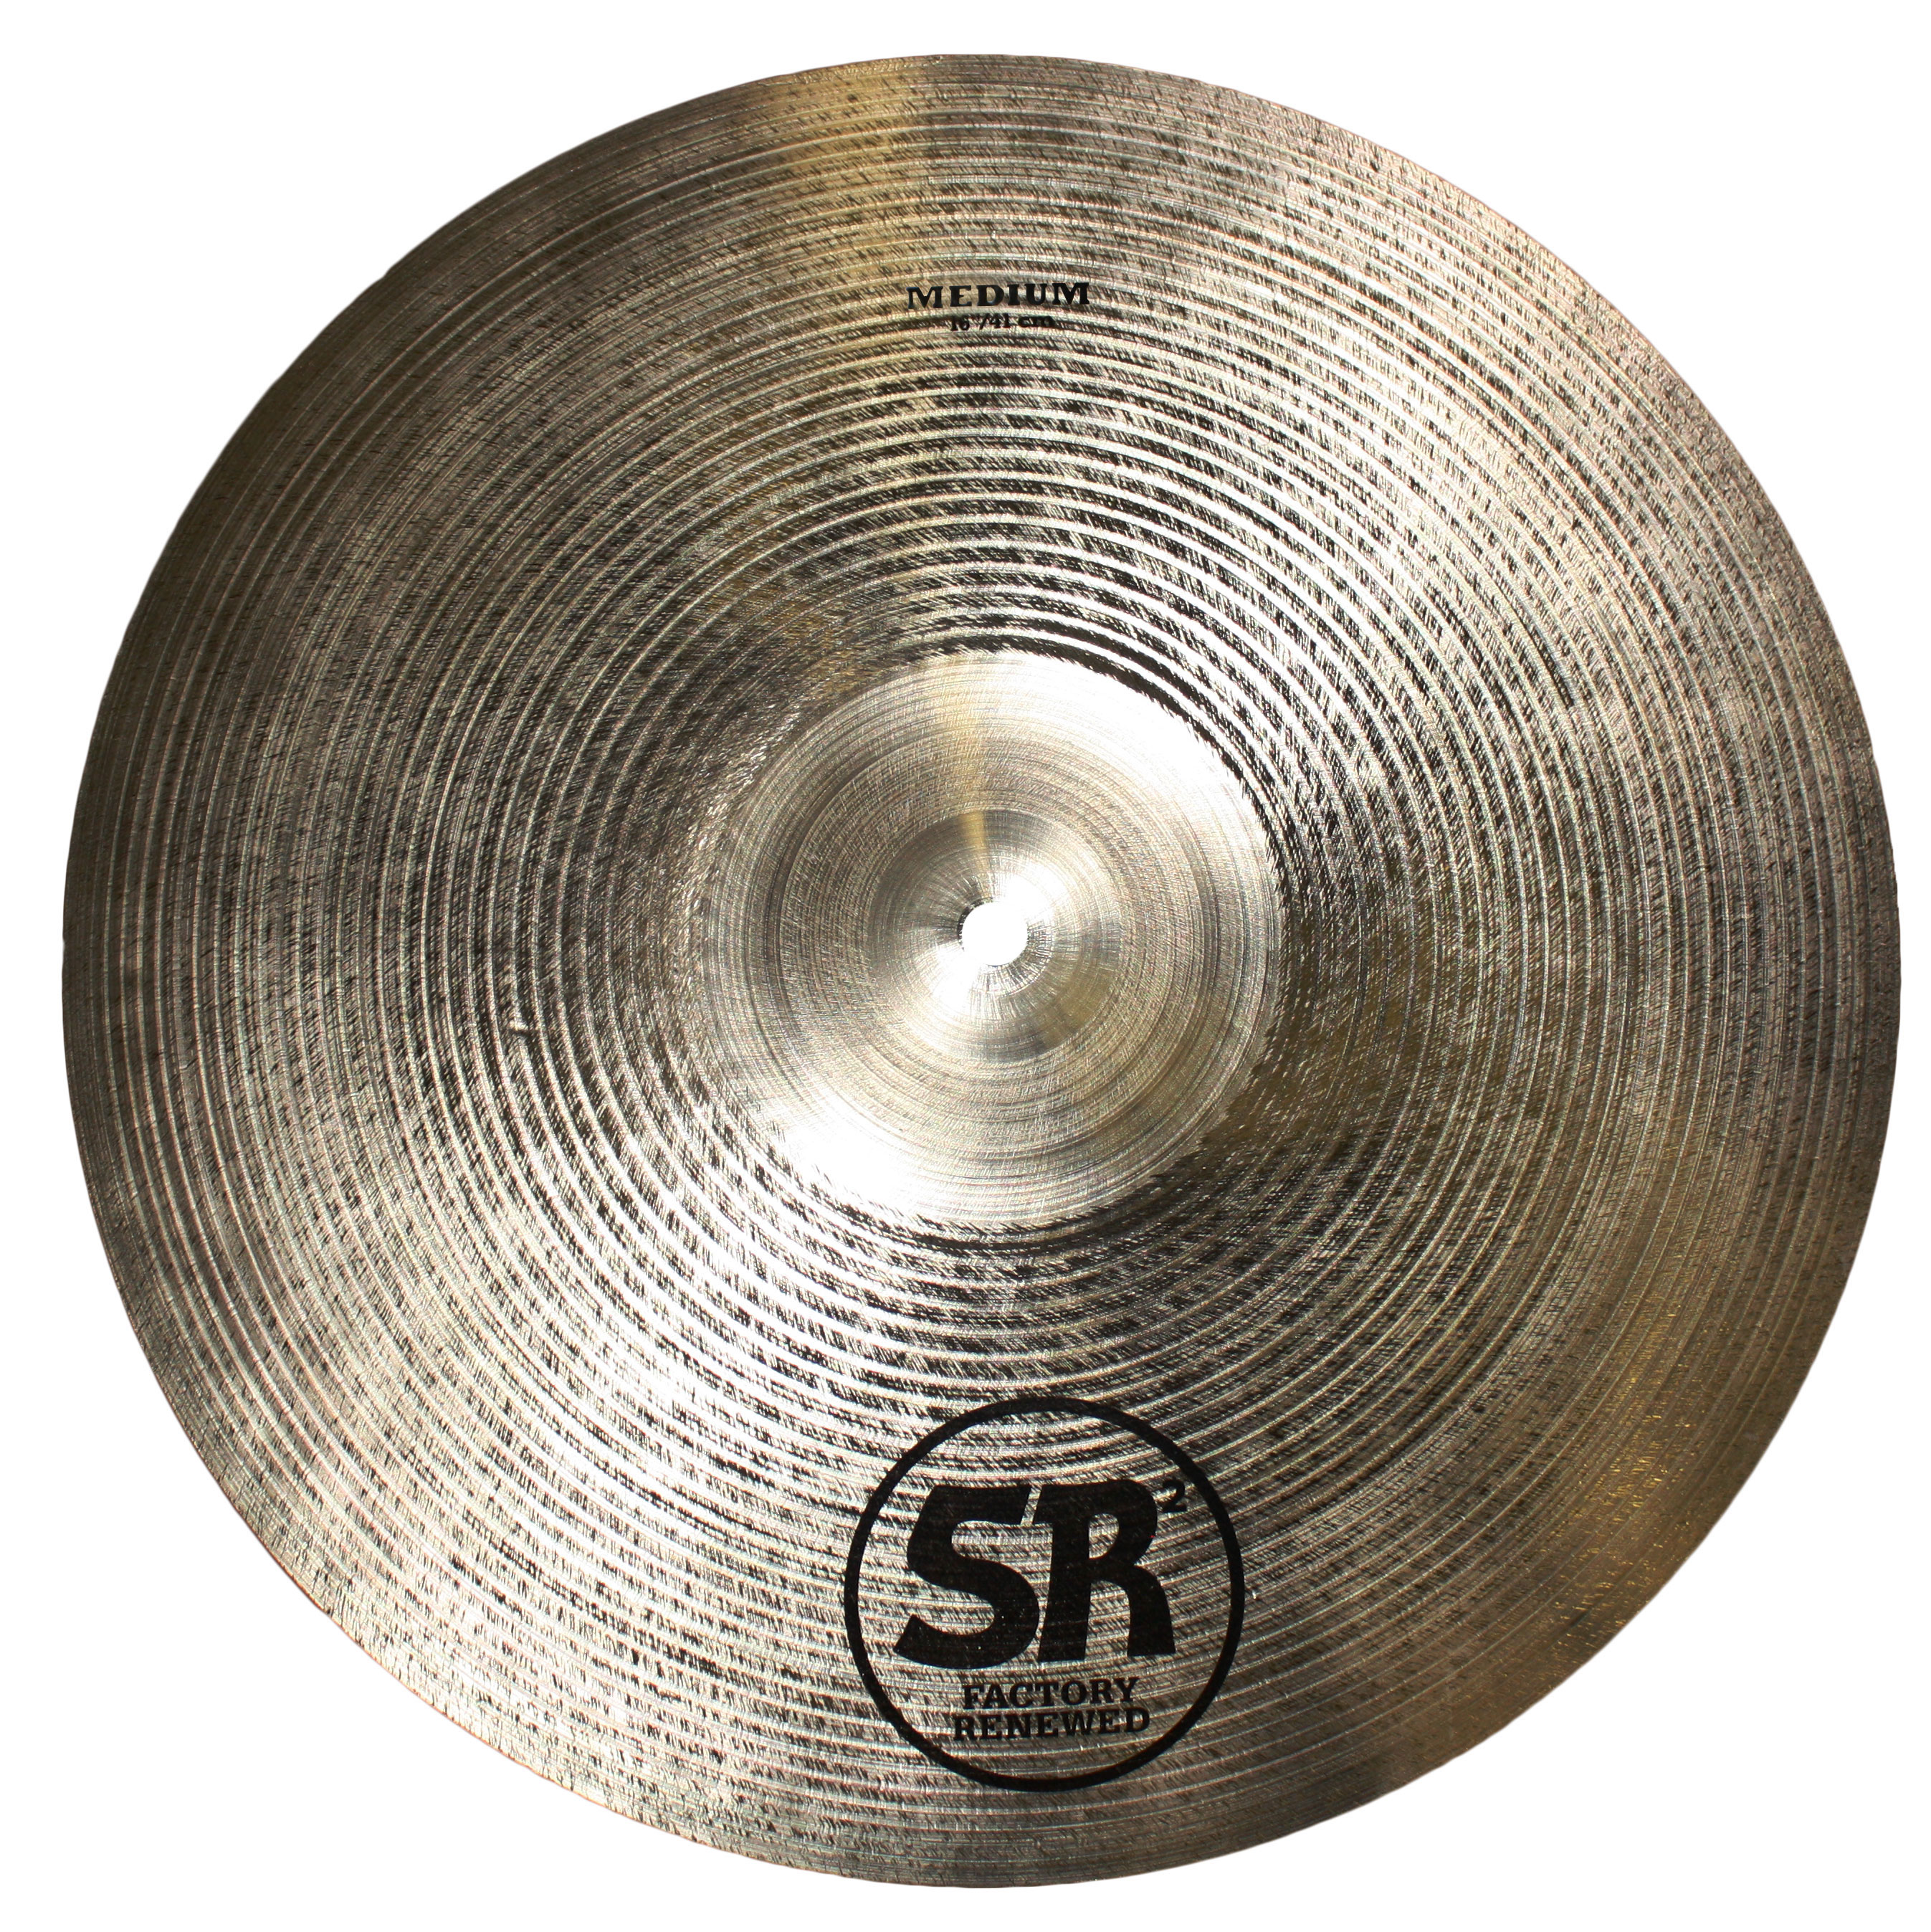 "Sabian 16"" SR2 Medium Cymbal"